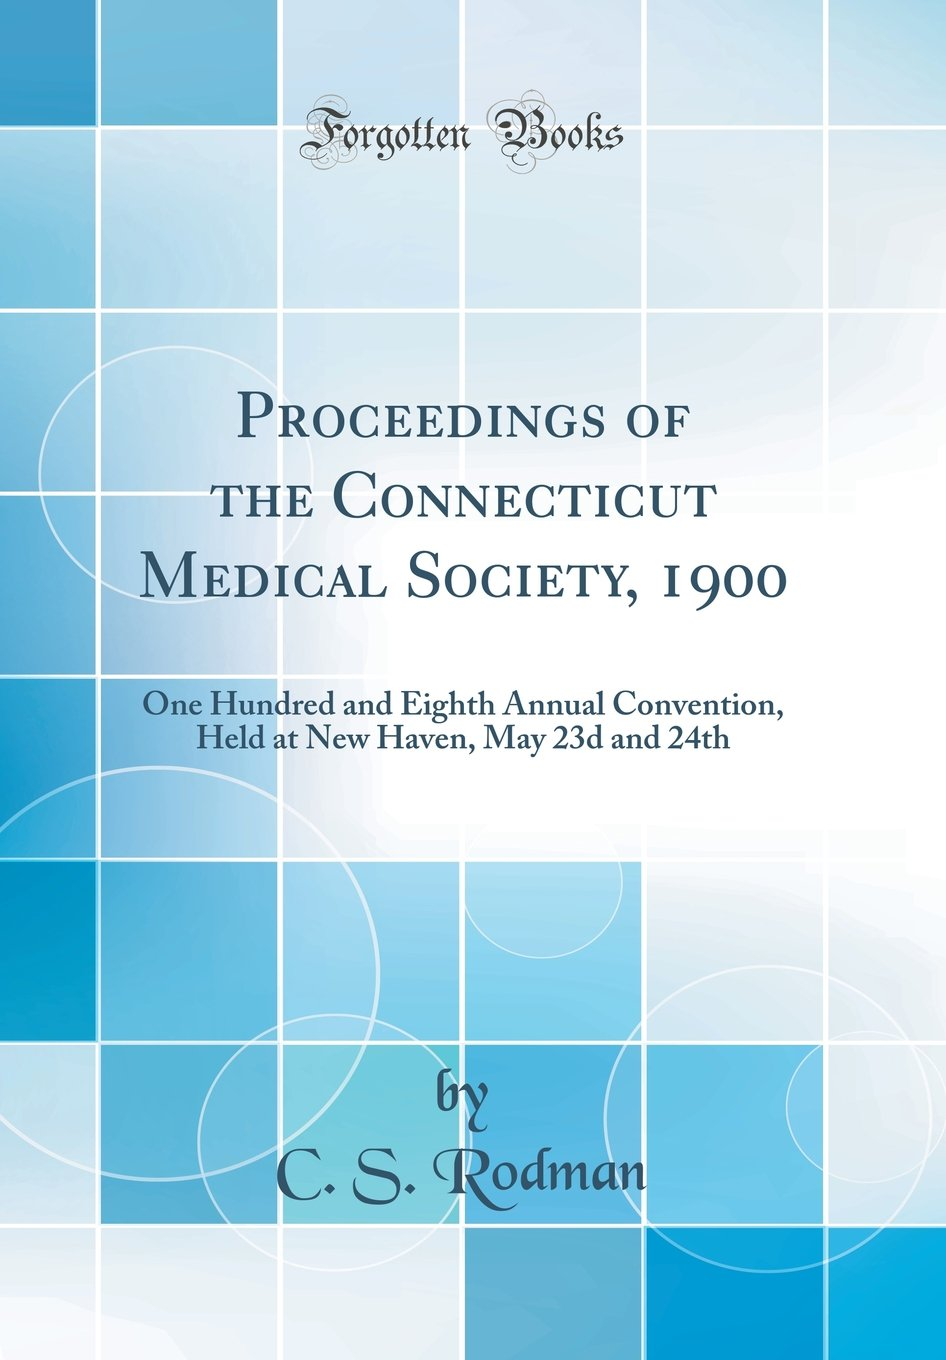 Download Proceedings of the Connecticut Medical Society, 1900: One Hundred and Eighth Annual Convention, Held at New Haven, May 23d and 24th (Classic Reprint) pdf epub